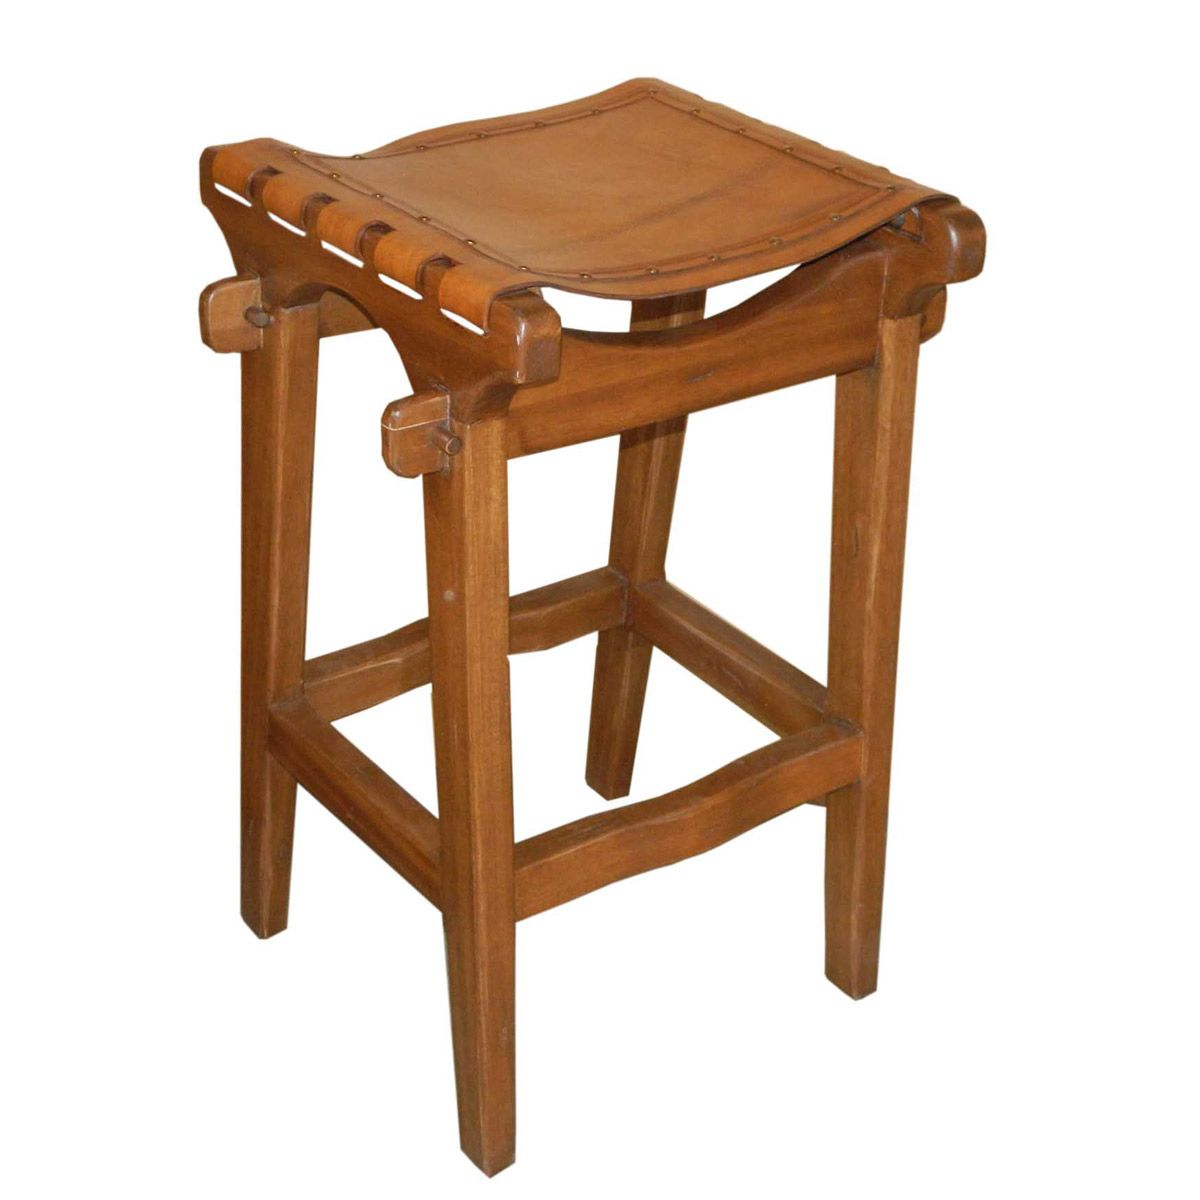 Santa Fe Rustic Brown Counter Stool with Nail Heads